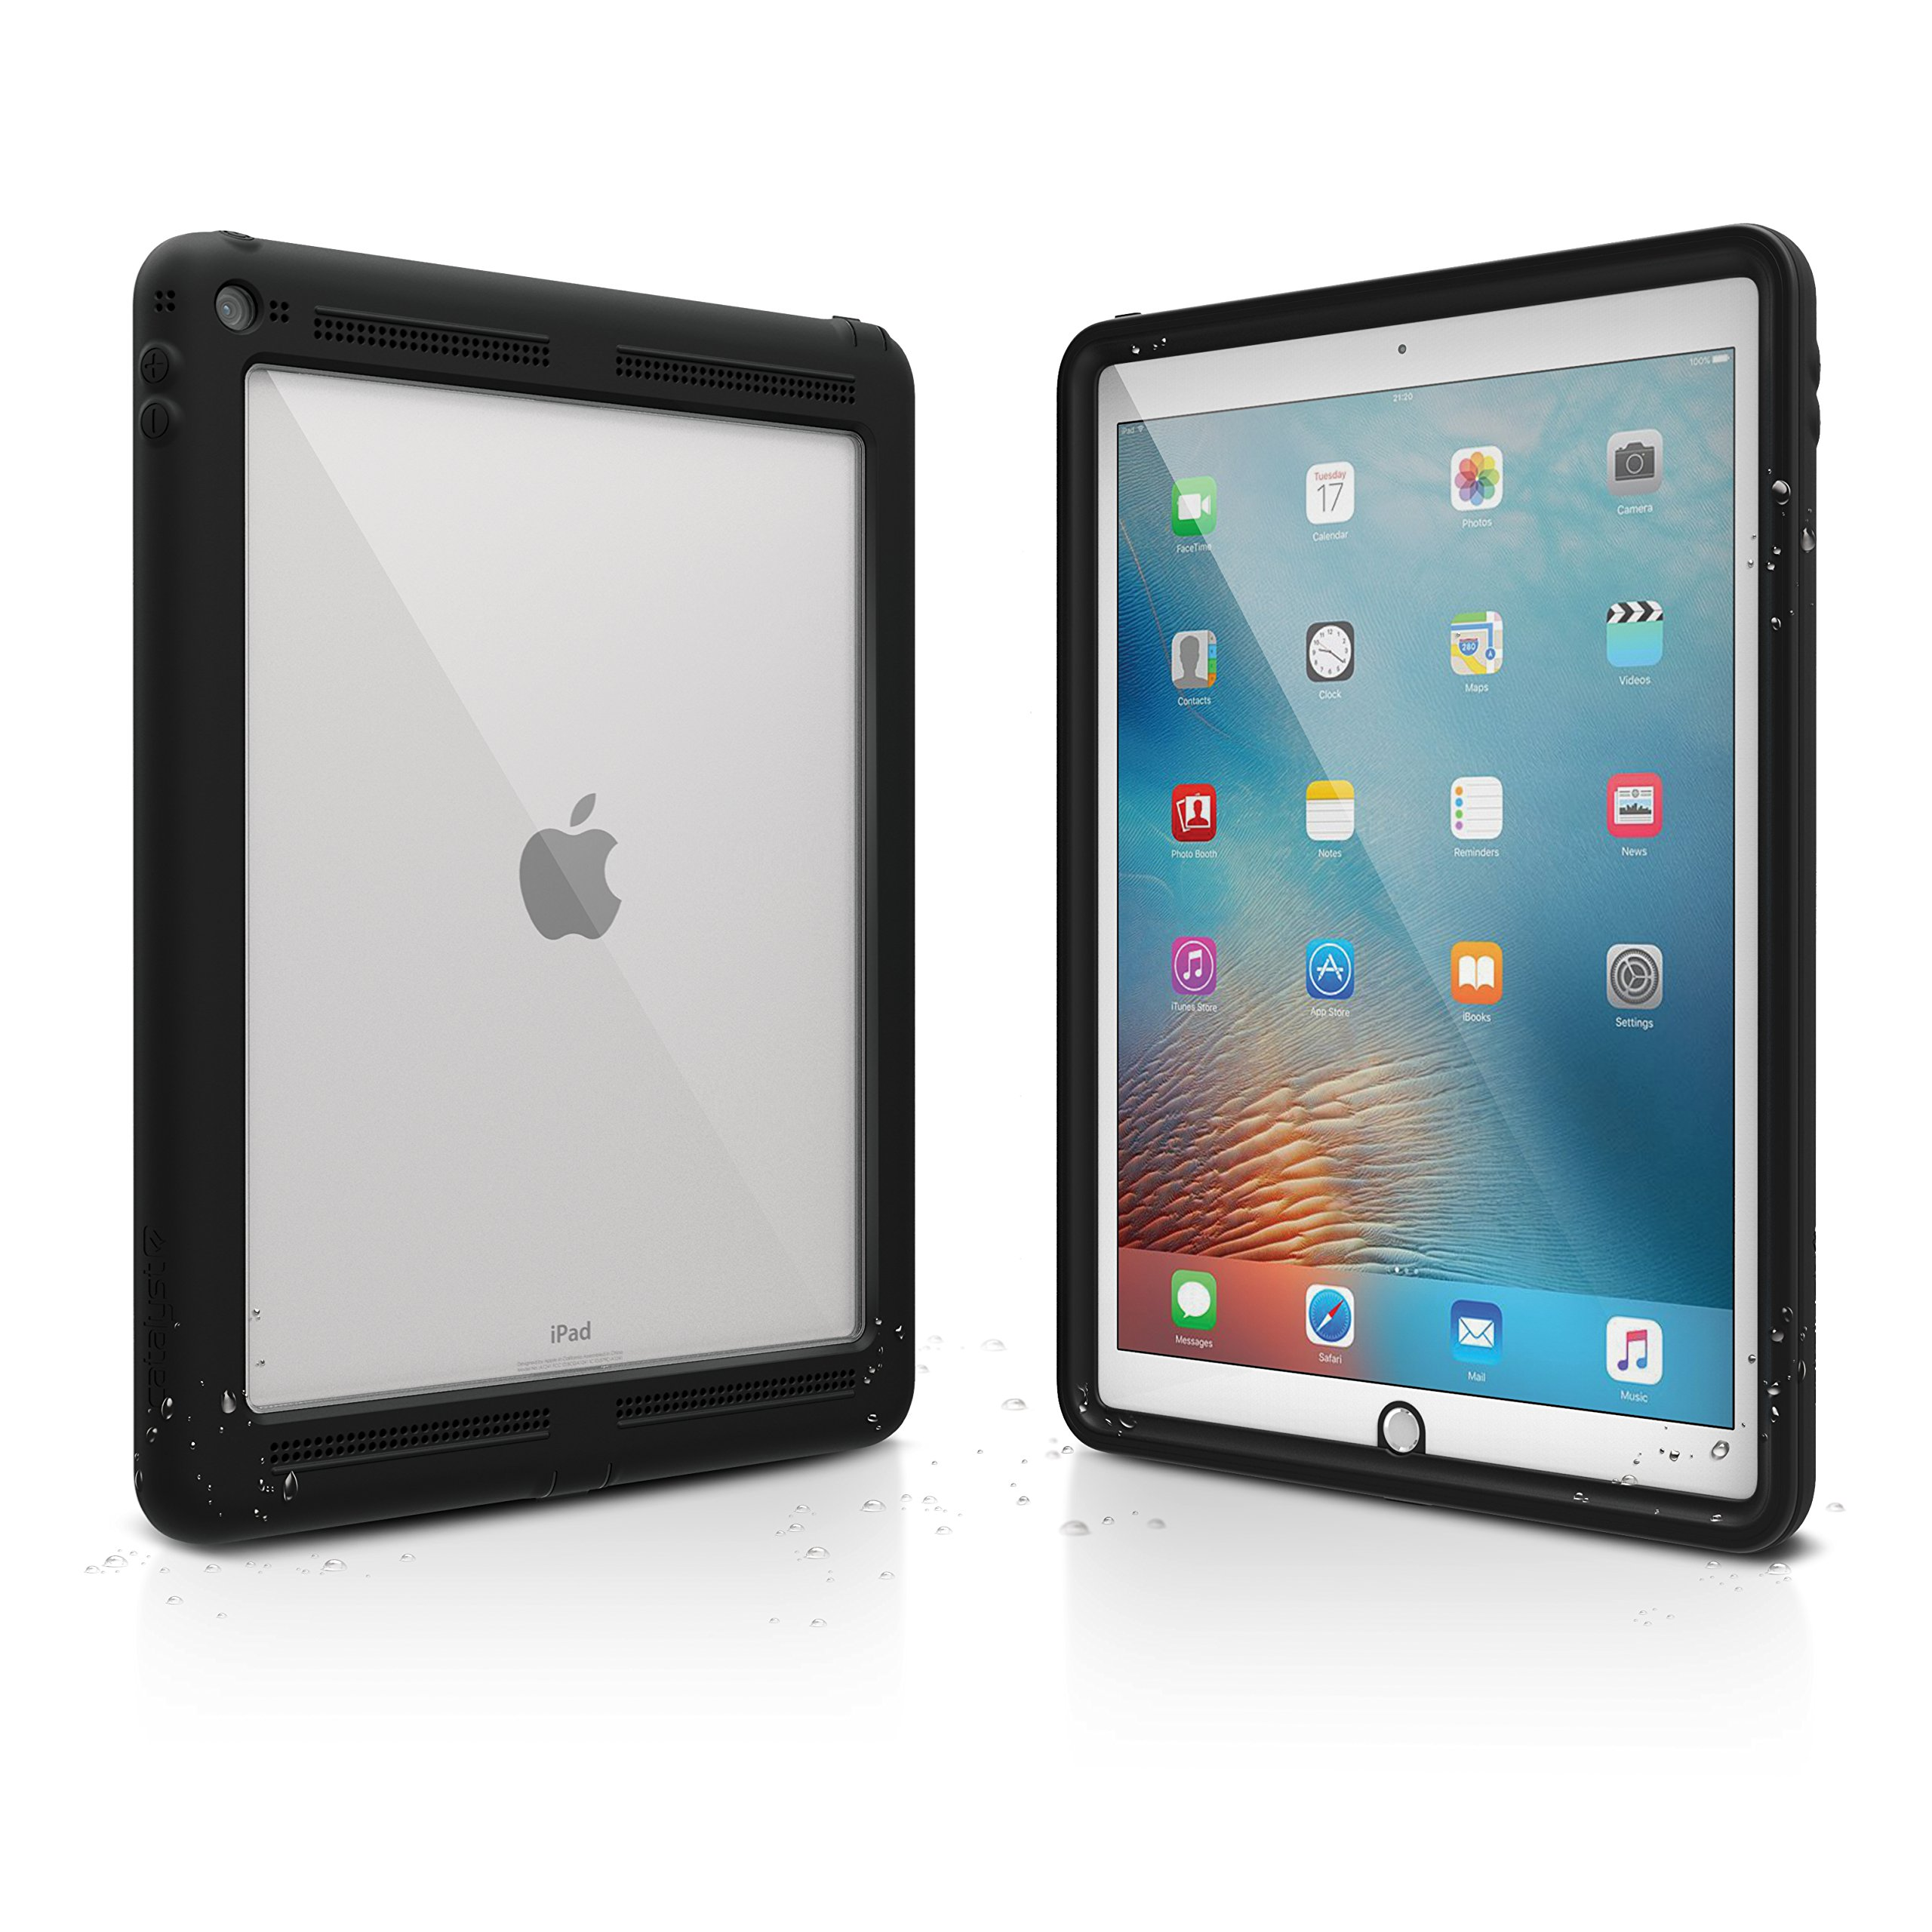 Catalyst Premium Quality Waterproof Shockproof Case for Apple 12.9'' iPad Pro (2015) - Stealth Black with High Touch Sensitivity ID and Multi Position Stand by Catalyst